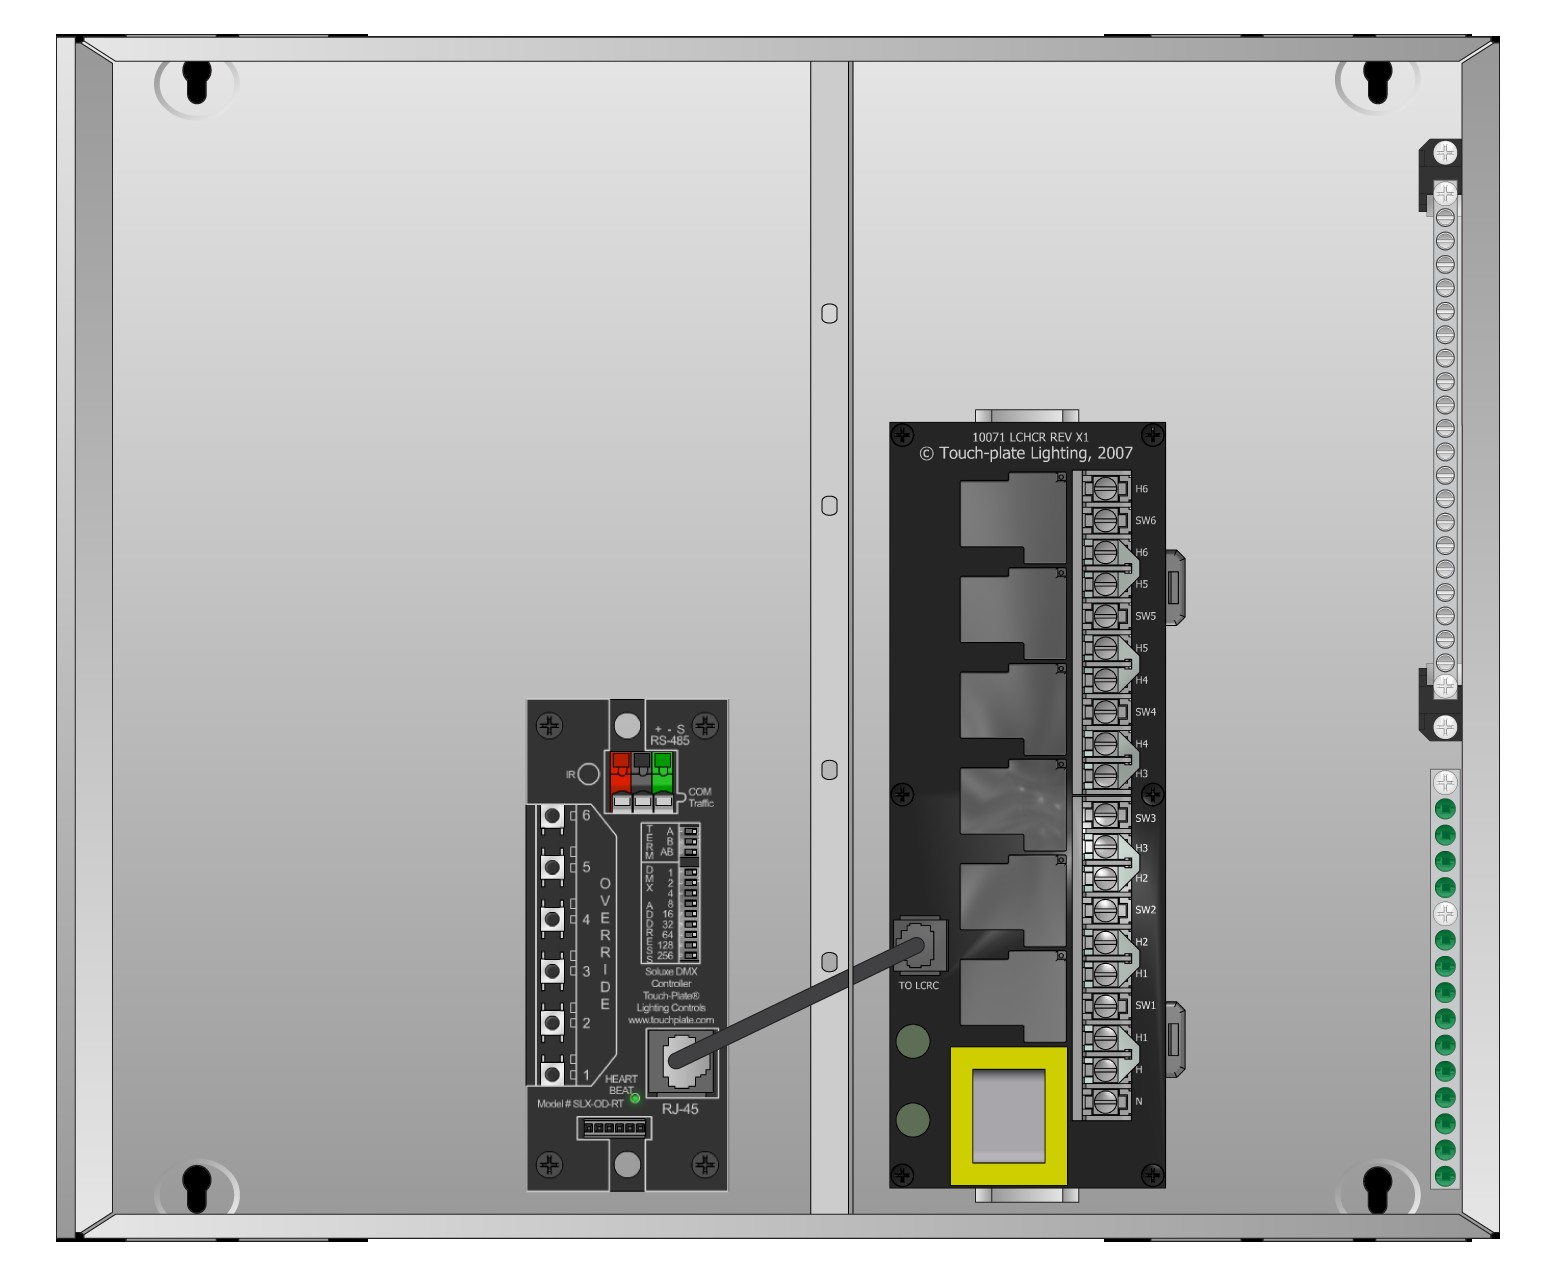 Wiring A touch Lamp Control soluxe Optima Relay Panels touch Plate Lighting Controls Of Wiring A touch Lamp Control